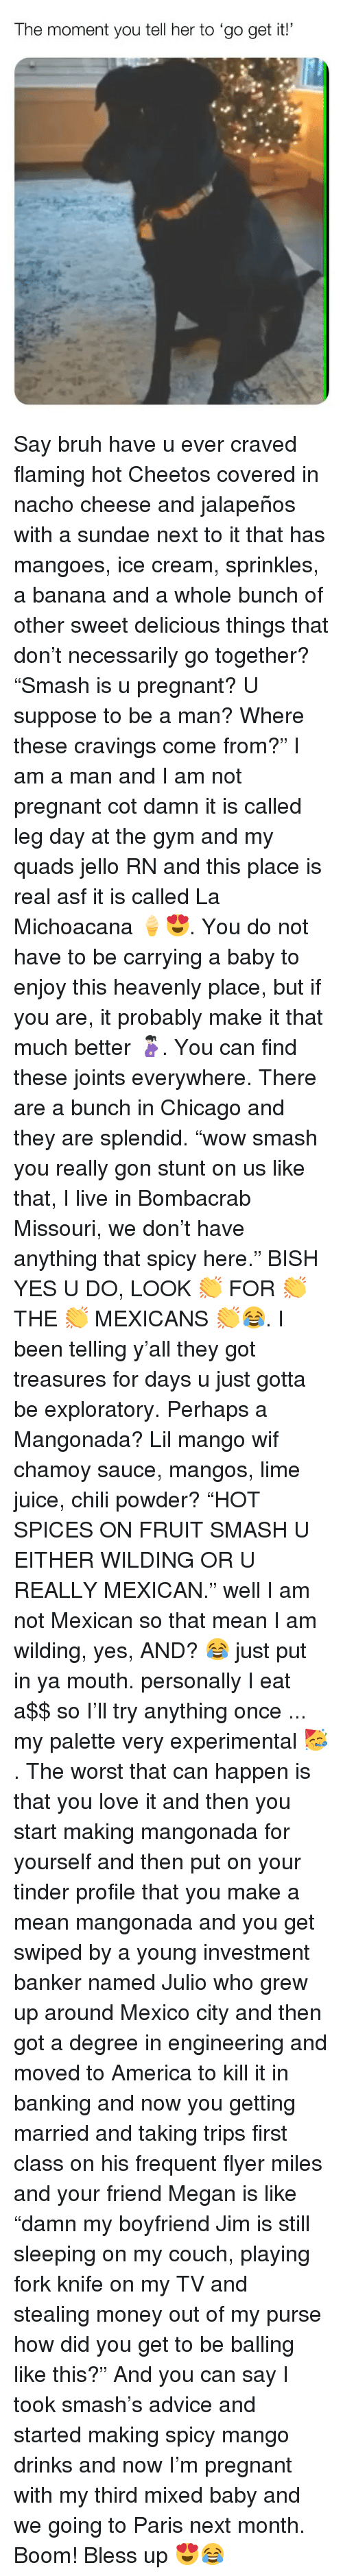 """Kill It: The moment you tell her to 'go get it! Say bruh have u ever craved flaming hot Cheetos covered in nacho cheese and jalapeños with a sundae next to it that has mangoes, ice cream, sprinkles, a banana and a whole bunch of other sweet delicious things that don't necessarily go together? """"Smash is u pregnant? U suppose to be a man? Where these cravings come from?"""" I am a man and I am not pregnant cot damn it is called leg day at the gym and my quads jello RN and this place is real asf it is called La Michoacana 🍦😍. You do not have to be carrying a baby to enjoy this heavenly place, but if you are, it probably make it that much better 🤰🏻. You can find these joints everywhere. There are a bunch in Chicago and they are splendid. """"wow smash you really gon stunt on us like that, I live in Bombacrab Missouri, we don't have anything that spicy here."""" BISH YES U DO, LOOK 👏 FOR 👏 THE 👏 MEXICANS 👏😂. I been telling y'all they got treasures for days u just gotta be exploratory. Perhaps a Mangonada? Lil mango wif chamoy sauce, mangos, lime juice, chili powder? """"HOT SPICES ON FRUIT SMASH U EITHER WILDING OR U REALLY MEXICAN."""" well I am not Mexican so that mean I am wilding, yes, AND? 😂 just put in ya mouth. personally I eat a$$ so I'll try anything once ... my palette very experimental 🥳. The worst that can happen is that you love it and then you start making mangonada for yourself and then put on your tinder profile that you make a mean mangonada and you get swiped by a young investment banker named Julio who grew up around Mexico city and then got a degree in engineering and moved to America to kill it in banking and now you getting married and taking trips first class on his frequent flyer miles and your friend Megan is like """"damn my boyfriend Jim is still sleeping on my couch, playing fork knife on my TV and stealing money out of my purse how did you get to be balling like this?"""" And you can say I took smash's advice and started making spicy mango drinks and now I'm preg"""